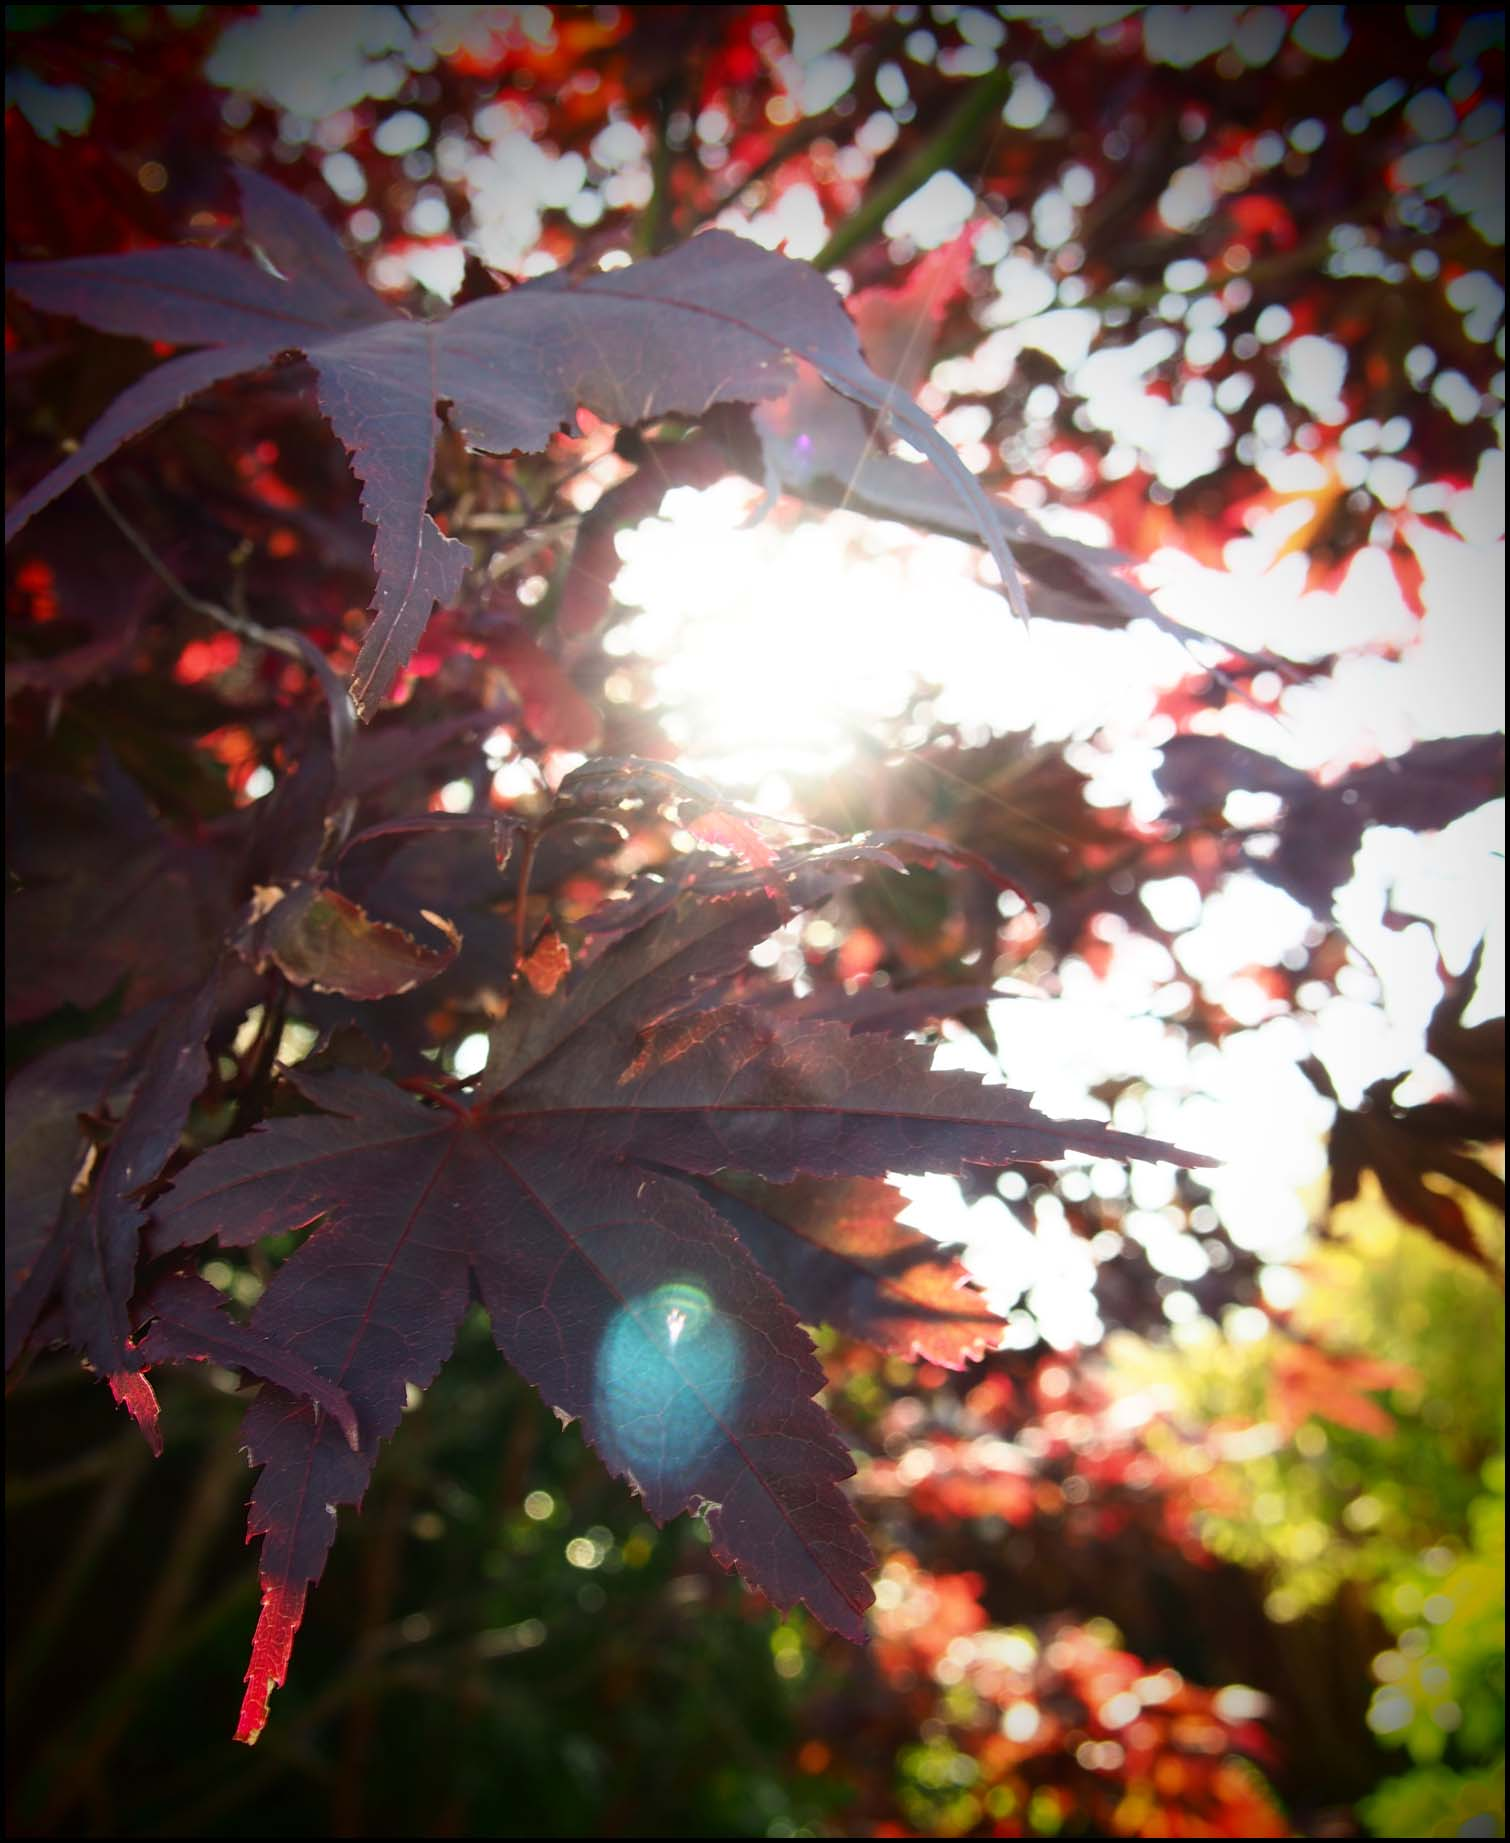 Sunlight through the leaves of the Acer tree